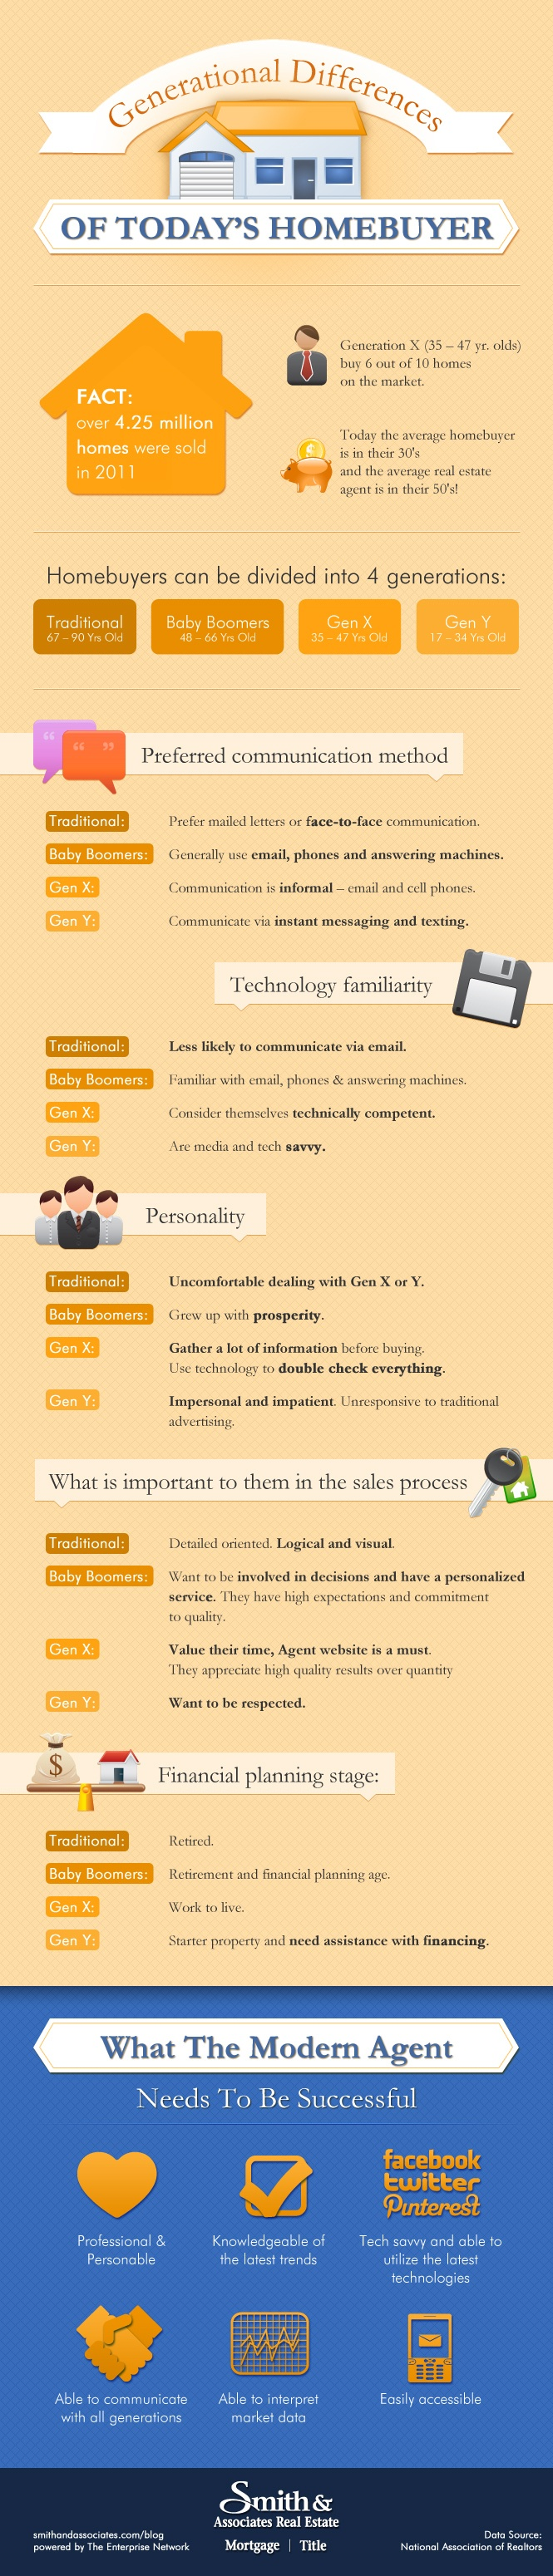 Generational Differences of Today's Homebuyer[INFOGRAPHIC]